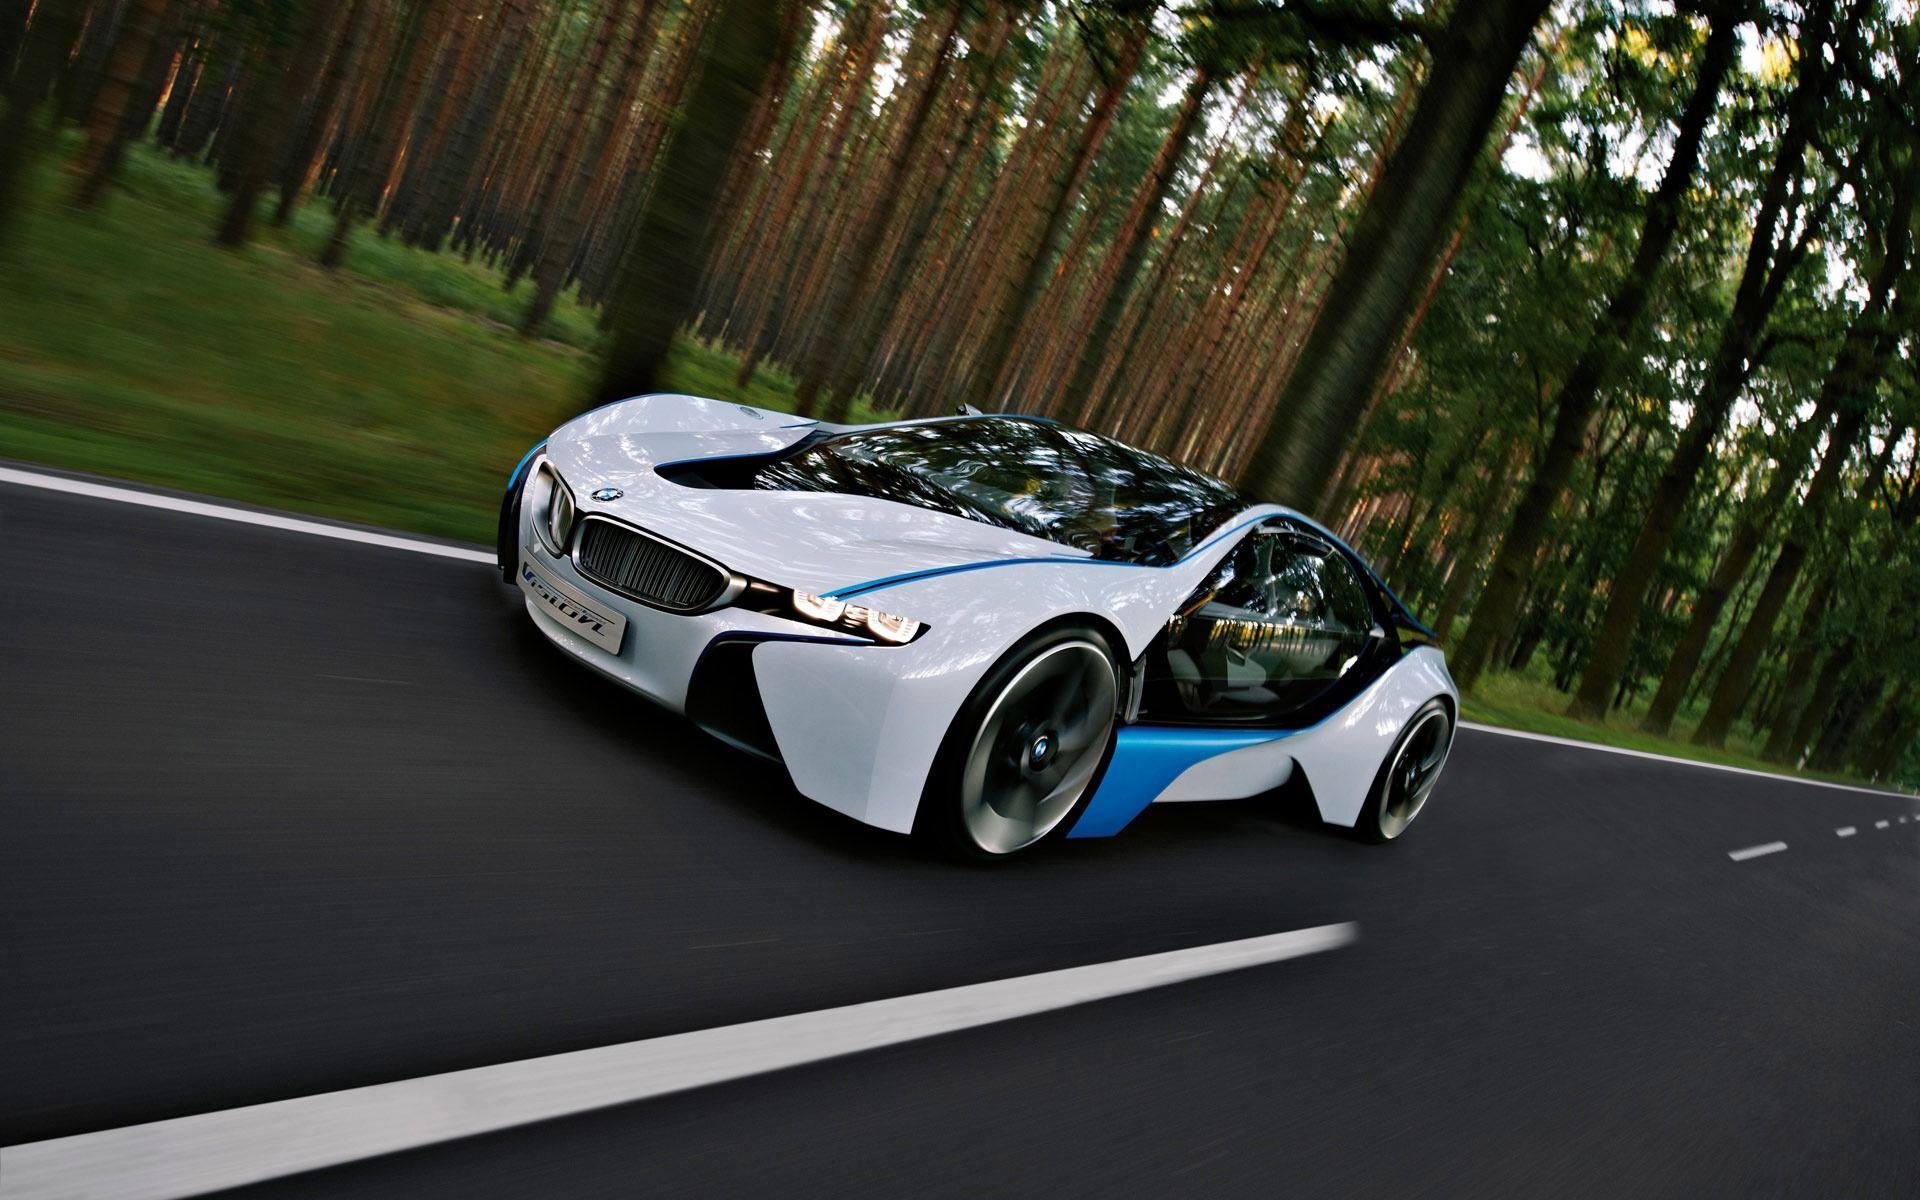 Bmw Cars Wallpapers Top Free Bmw Cars Backgrounds